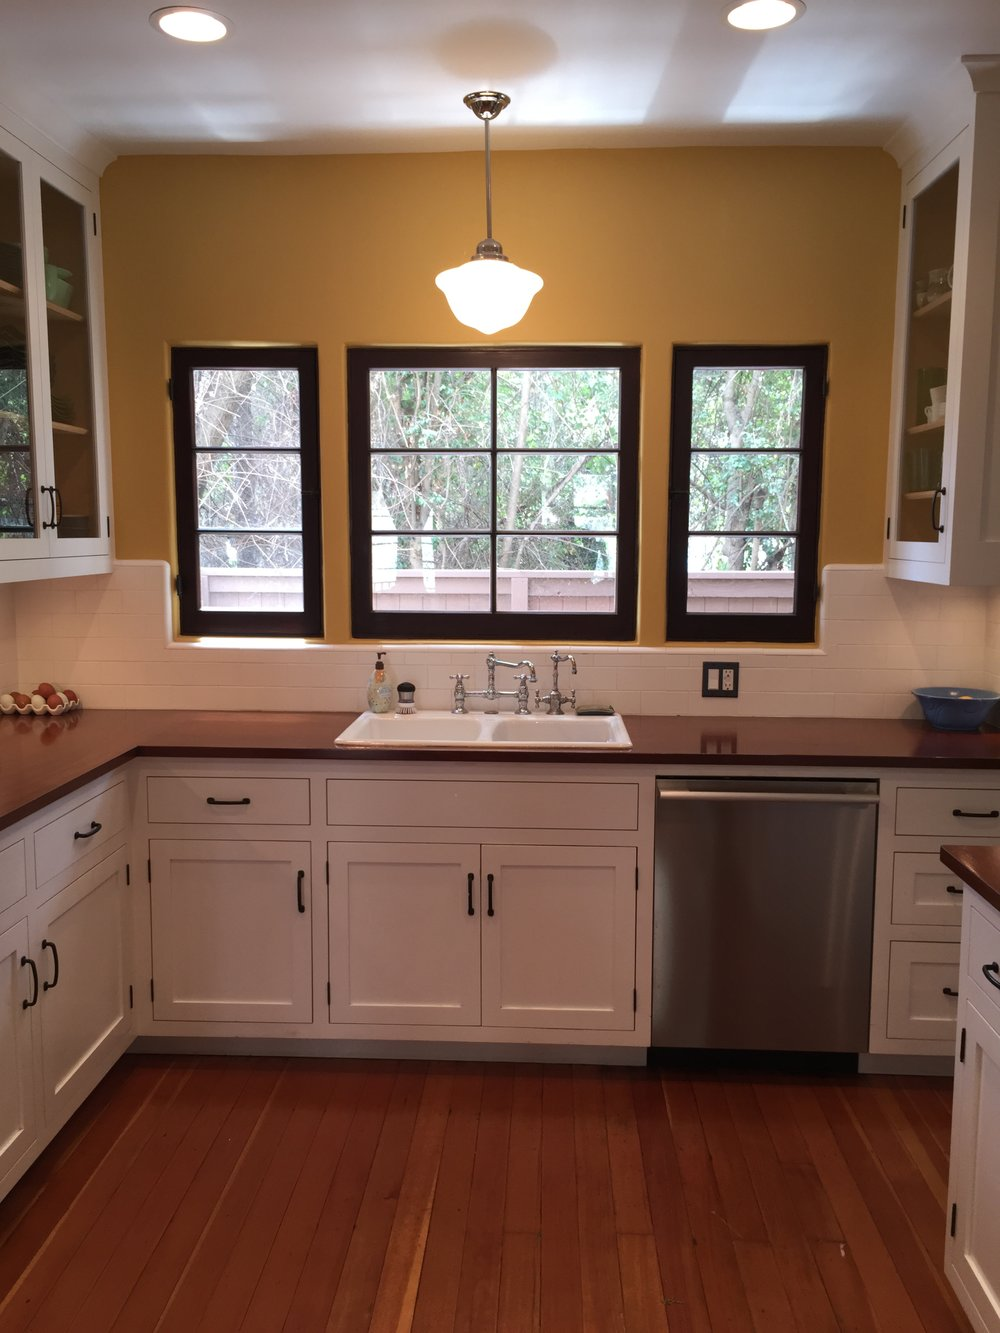 1920's kitchen re-created based on remaining elements in Butler's pantry and neighboring houses built by same builder.